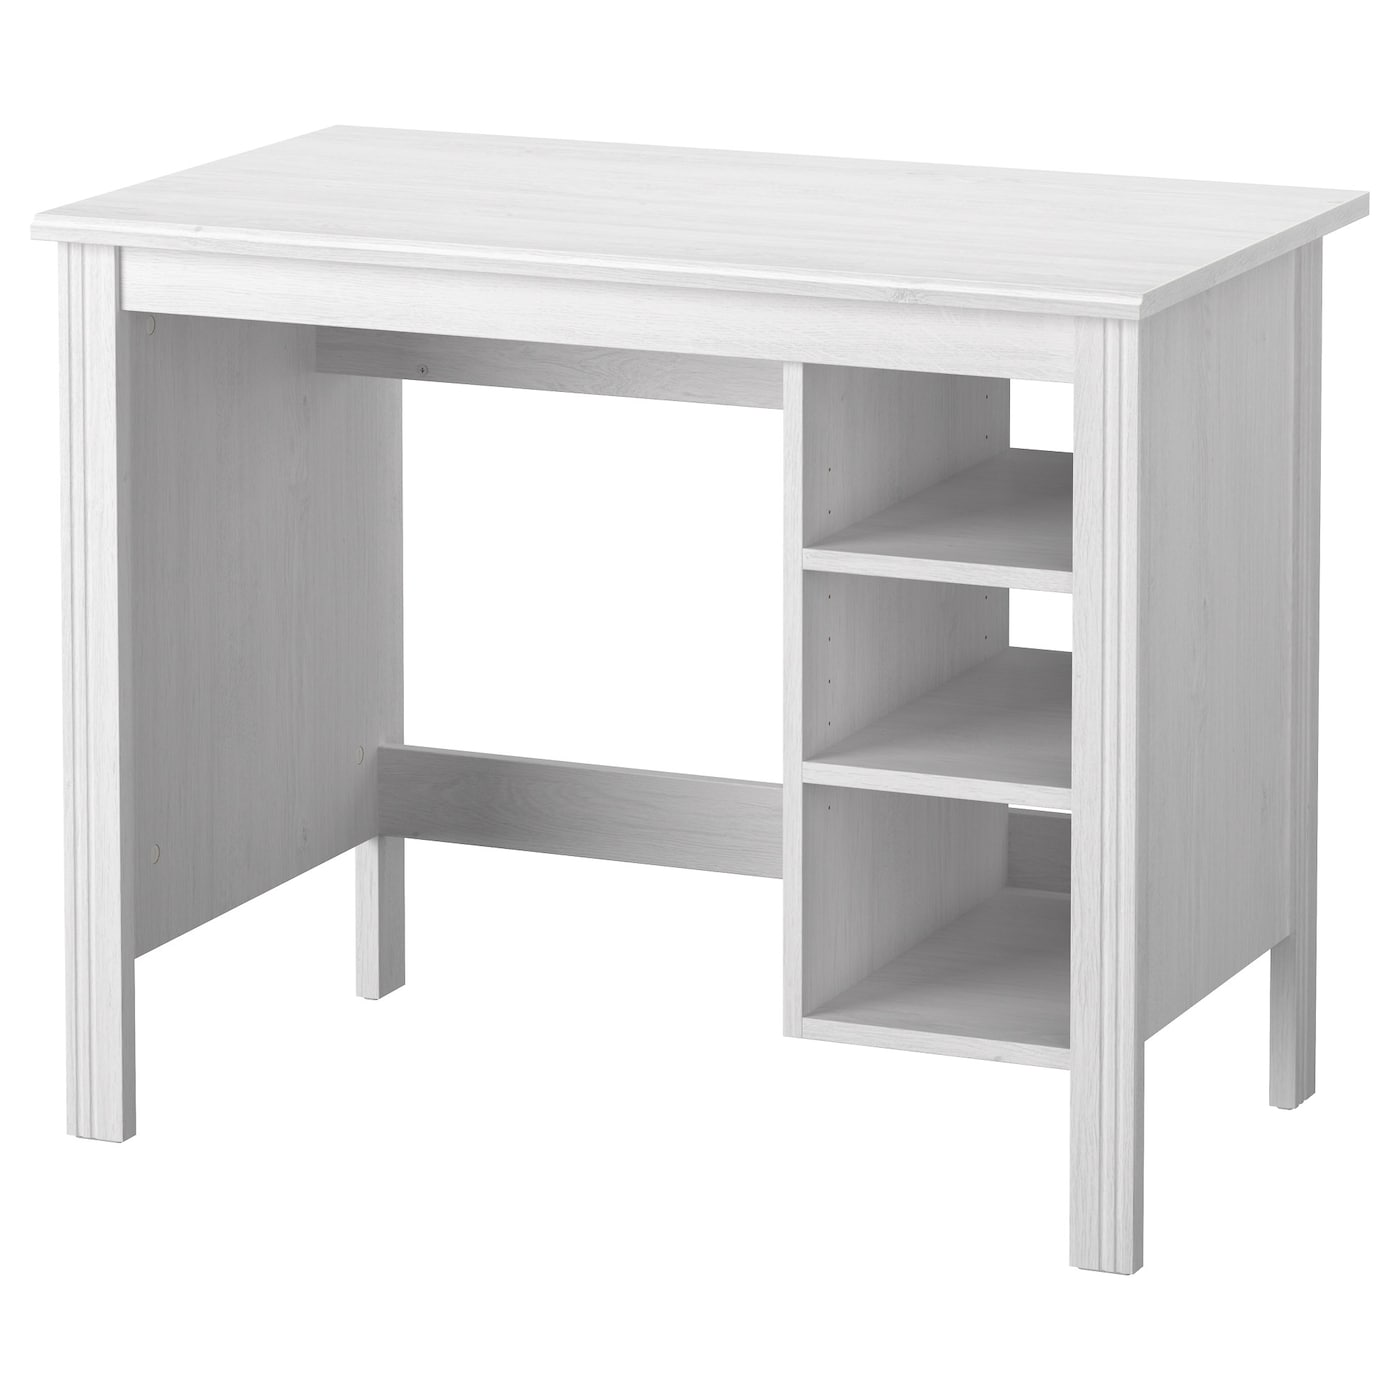 brusali desk white 90x52 cm ikea. Black Bedroom Furniture Sets. Home Design Ideas